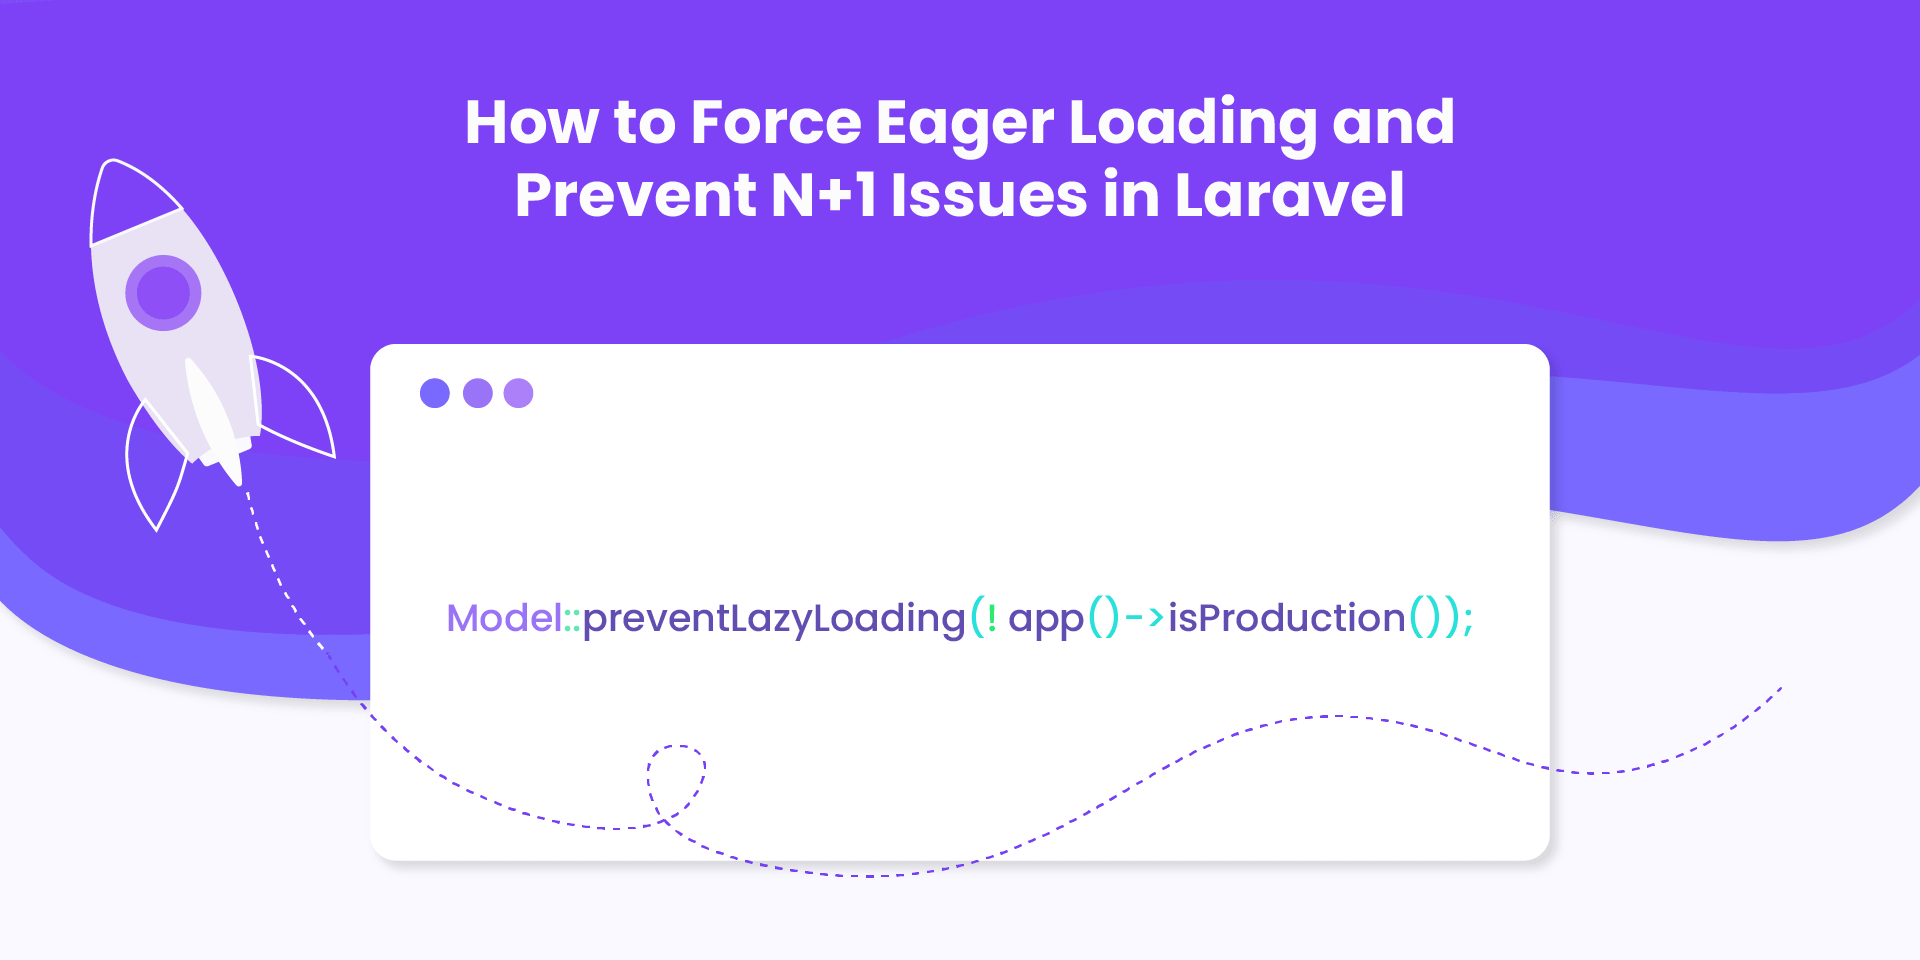 Learn how to force eager loading and prevent lazy loading in your Laravel application. You can use this feature to prevent N+1 queries to gain a performance improvement.